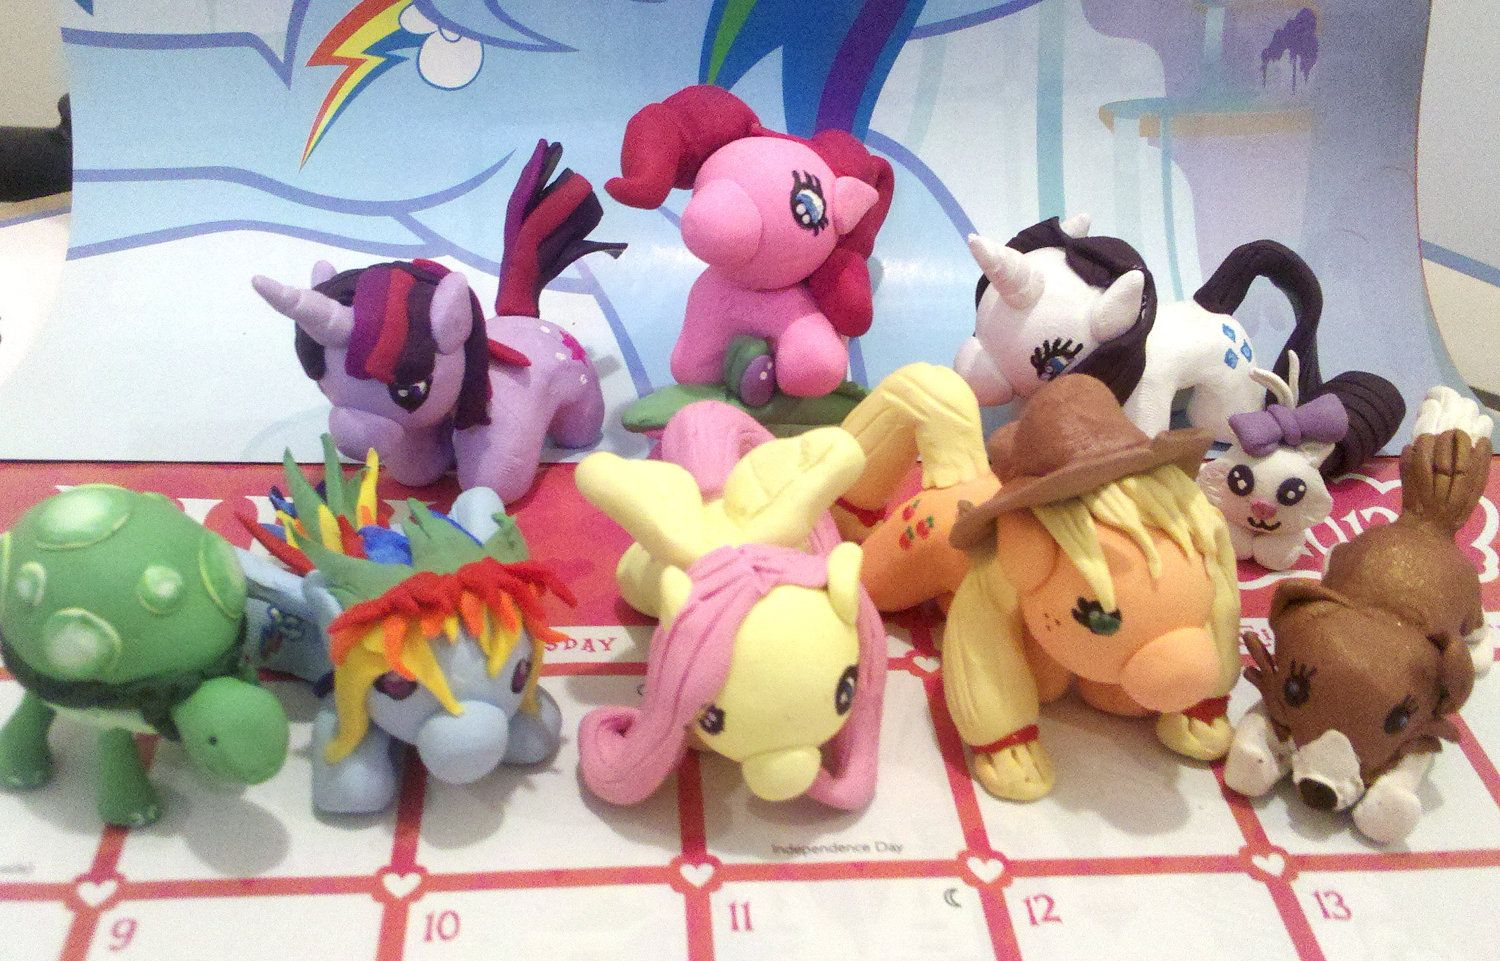 All my ponies <3  Finally finished the mane 6!  nerdymind.etsy.com